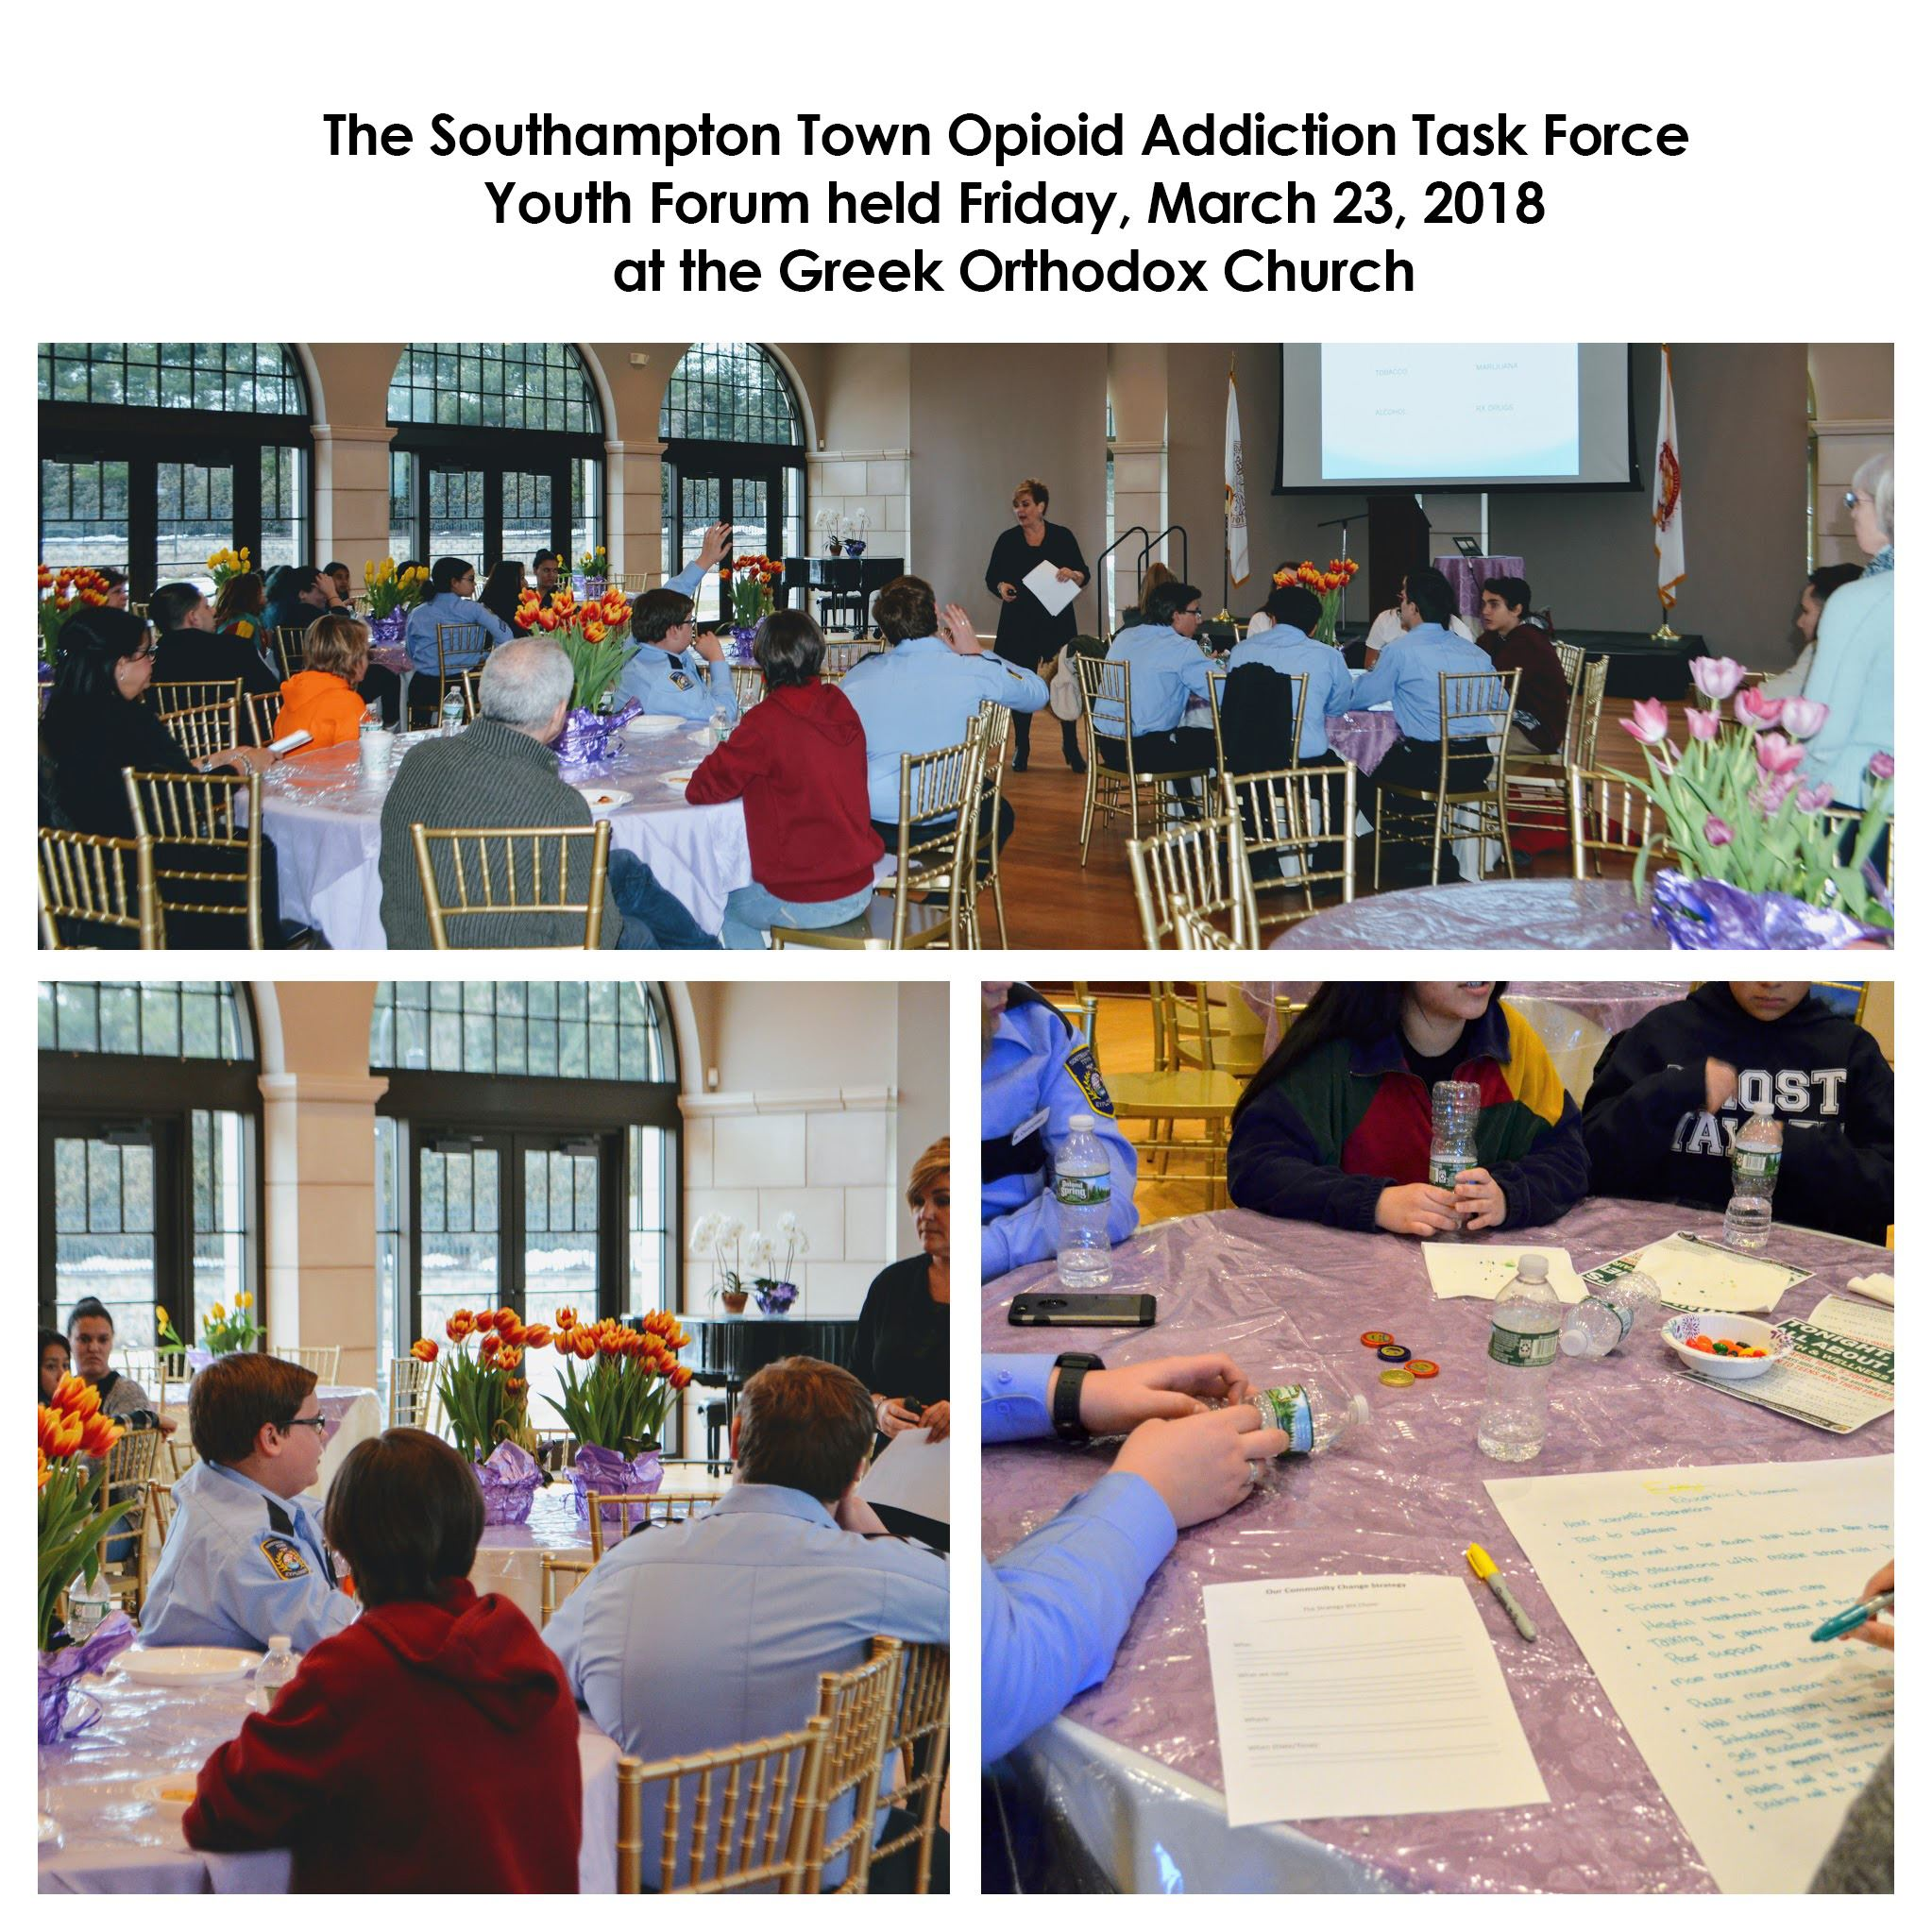 Opioid youth forum - COLLAGE